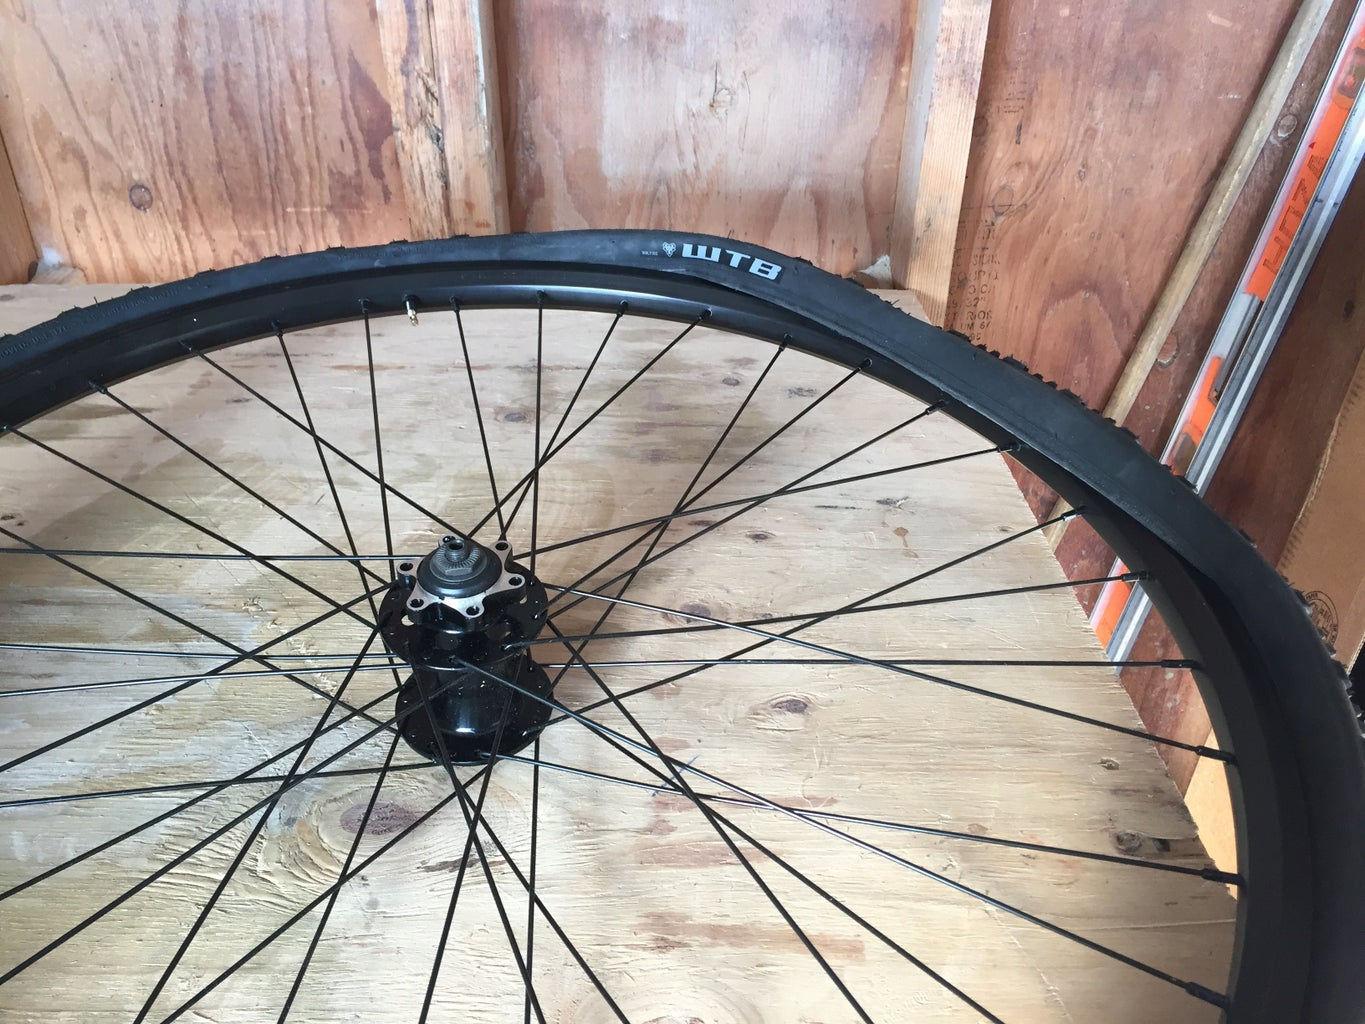 Assembly Part 1: Tubeless Tires